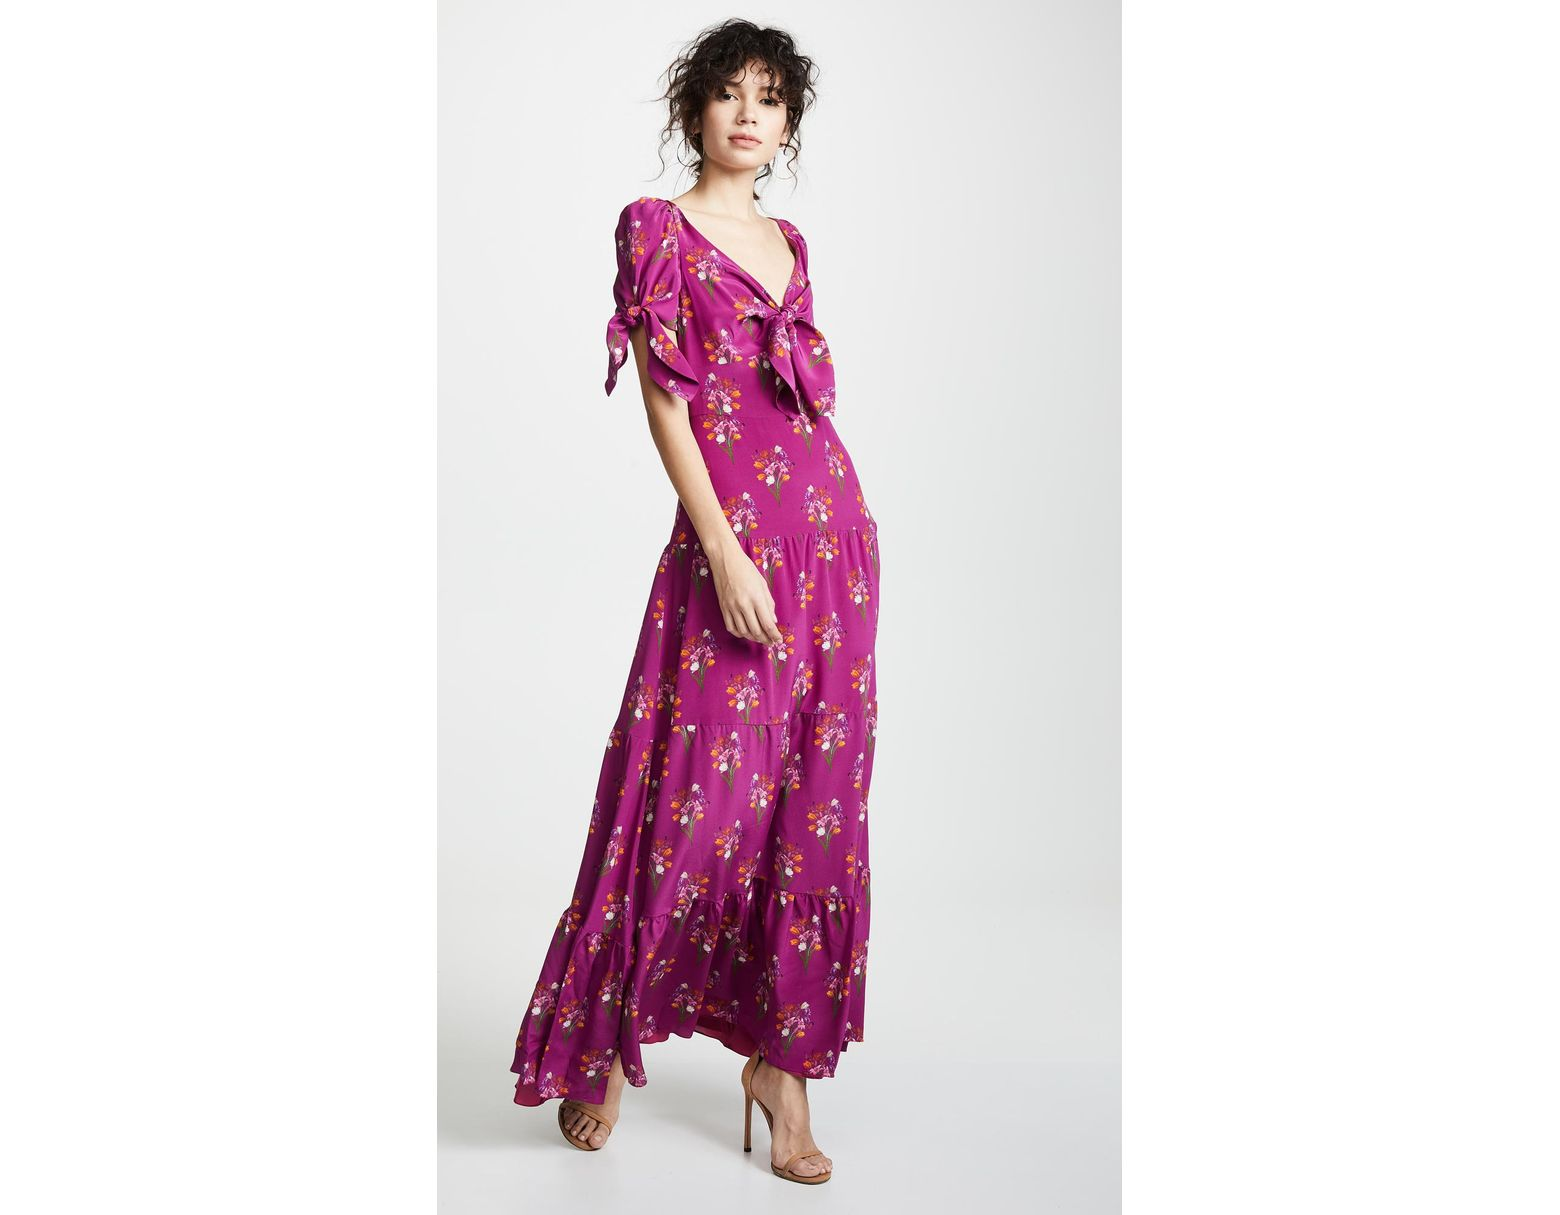 ab31443ebd Lyst - Borgo De Nor Ophelia Maxi Dress in Pink